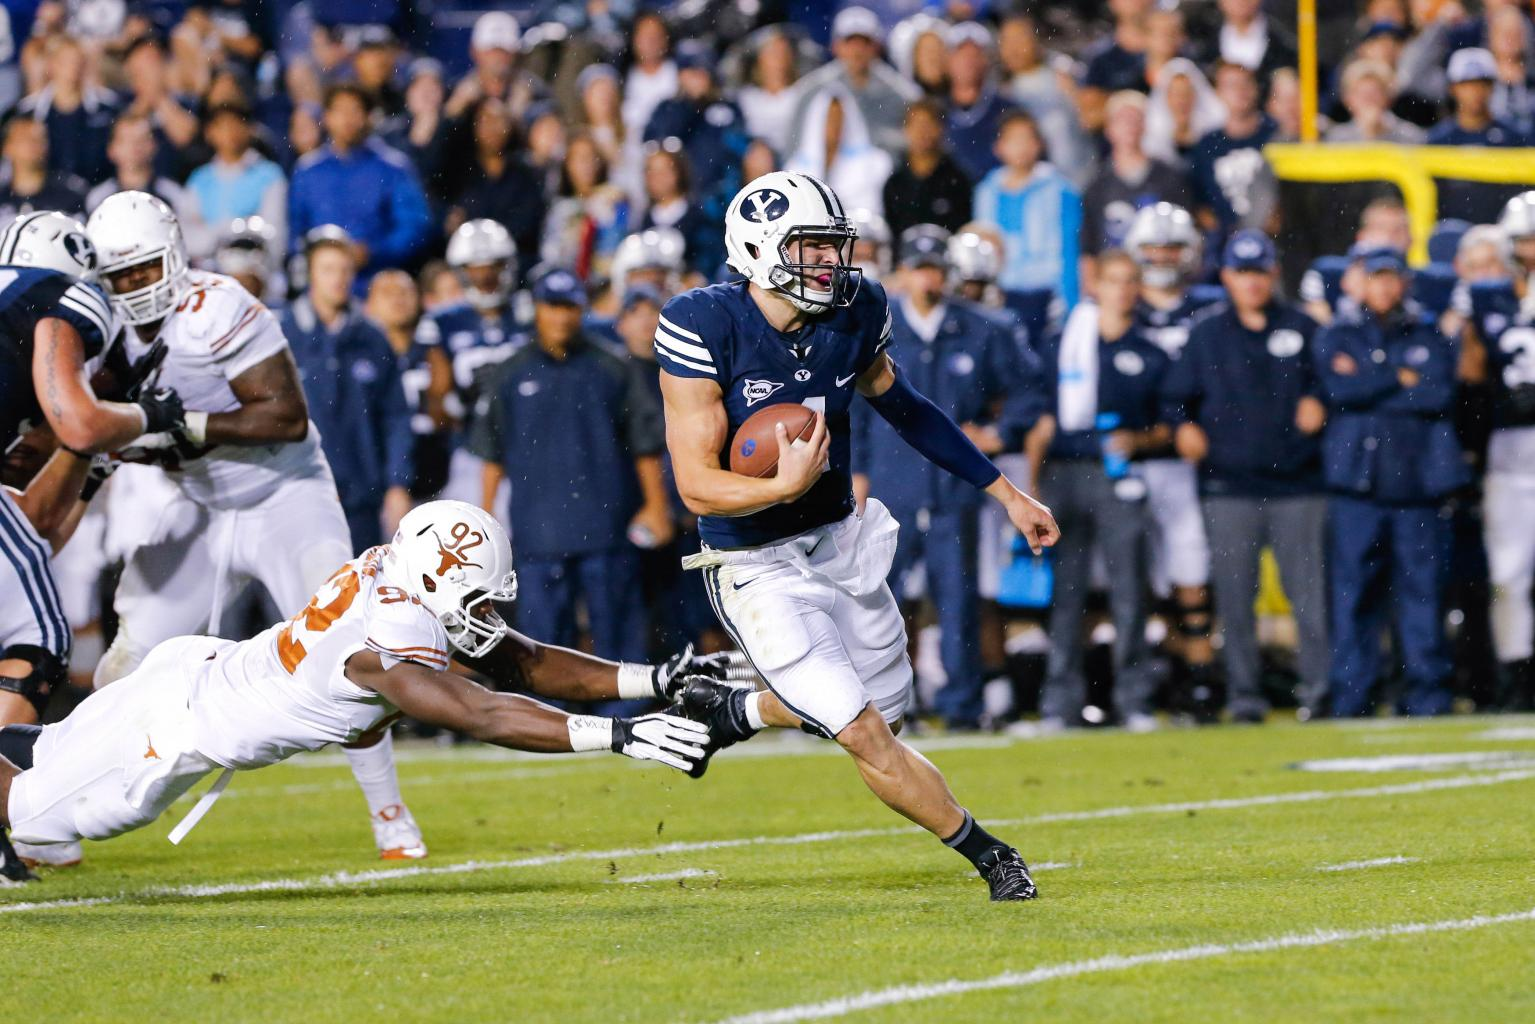 Taysom Hill, BYU Run Past Texas In Huge Bounce-back Win - Loyal Cougars